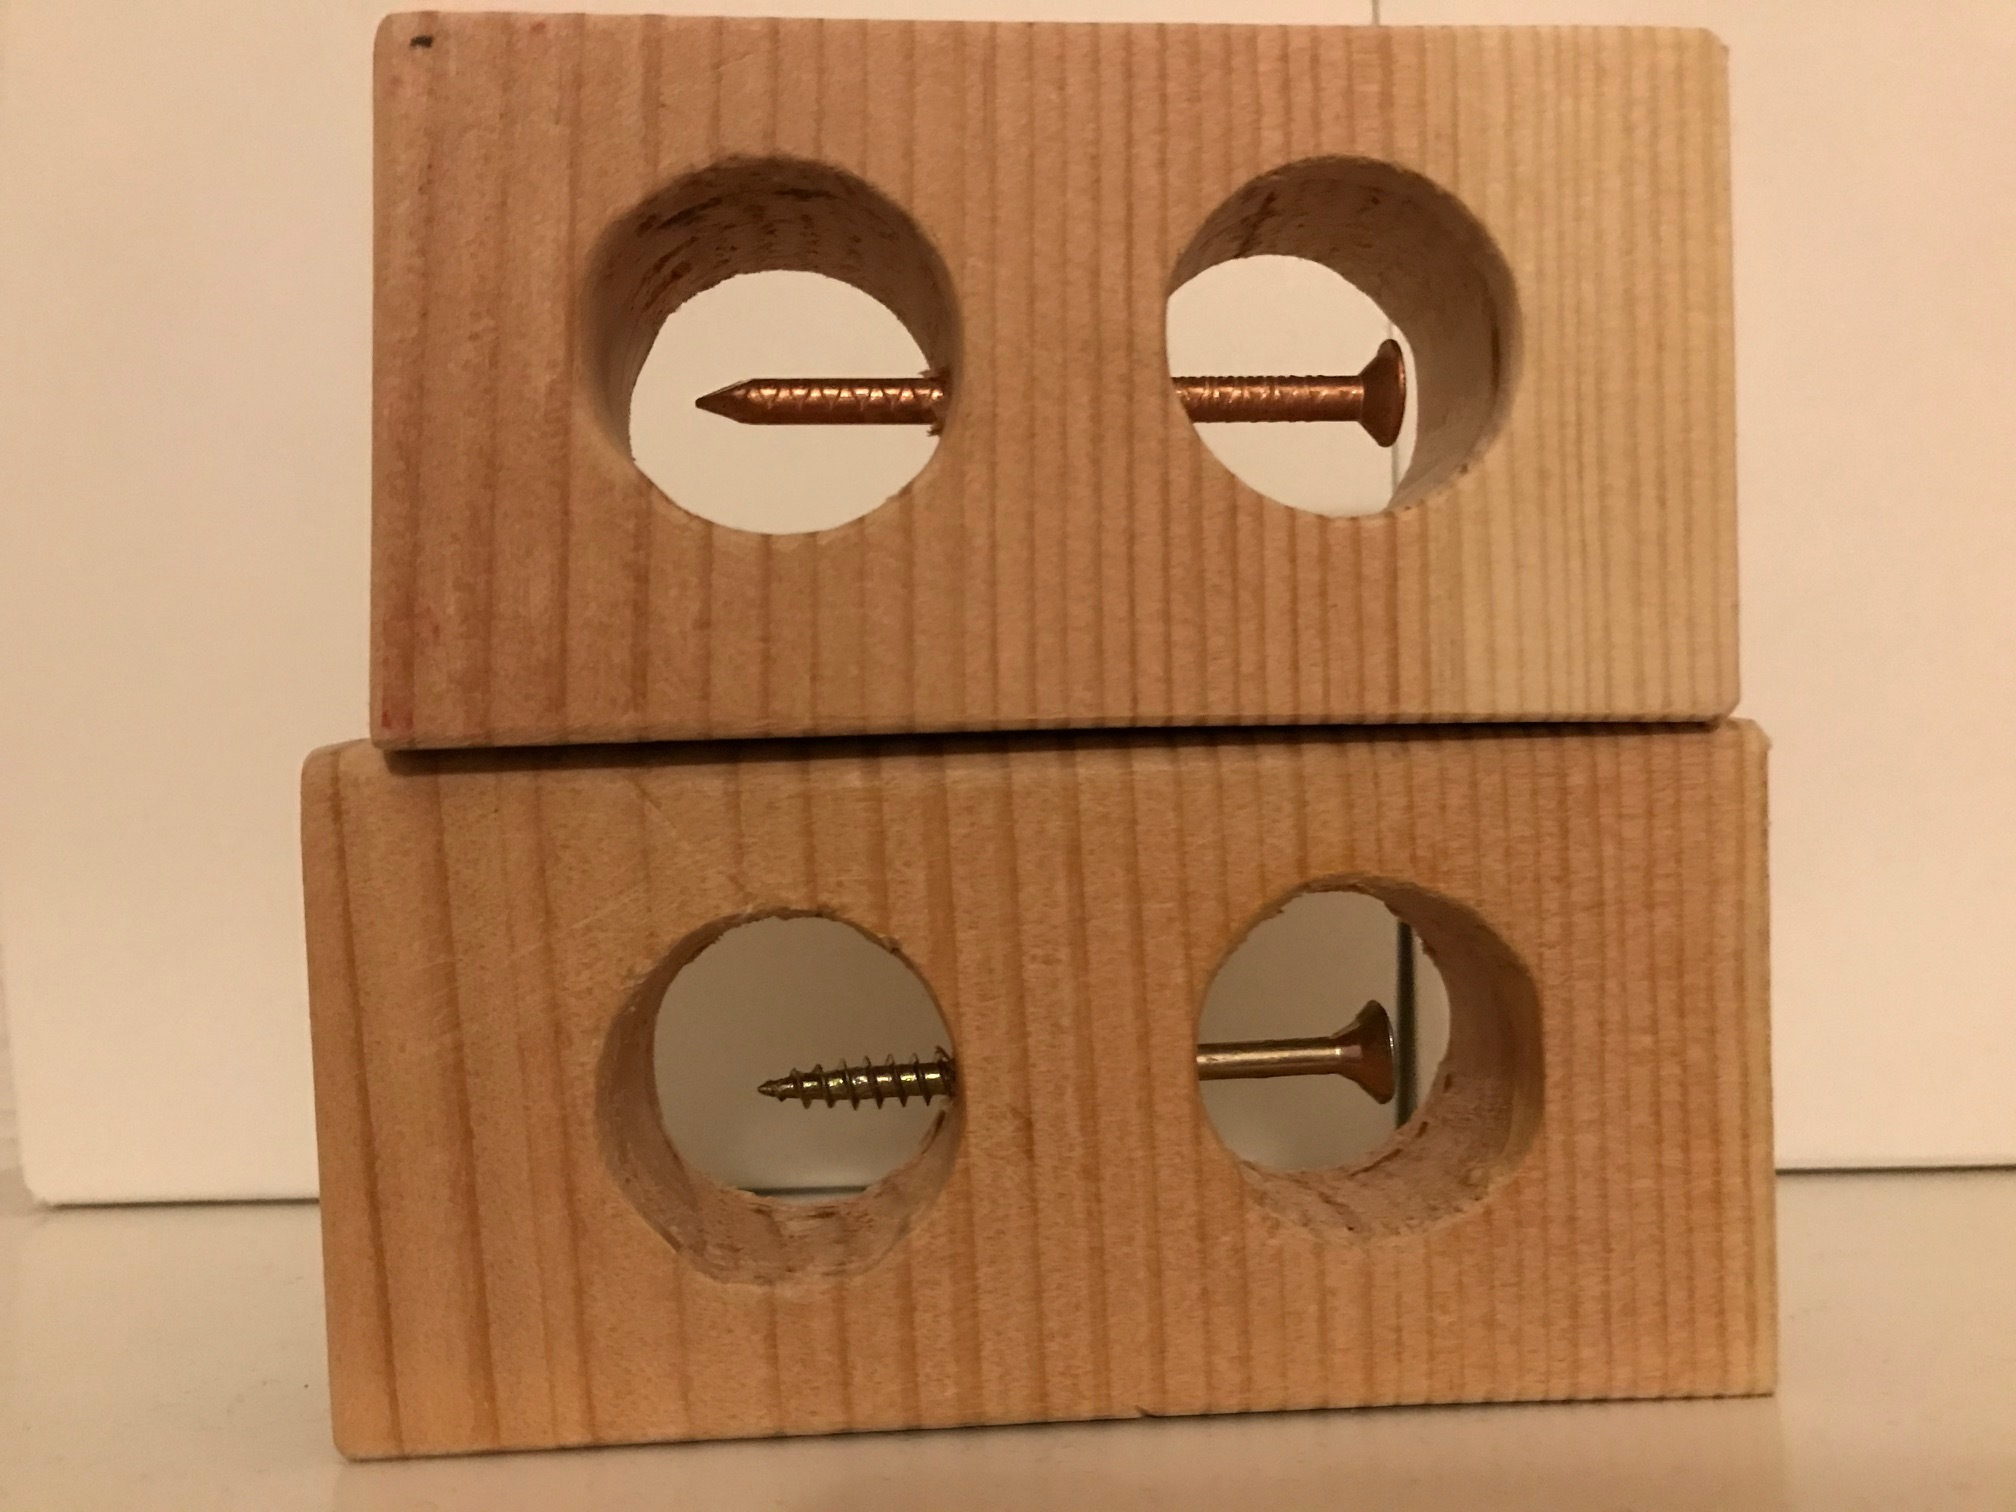 Impossible Nail in Wooden Block